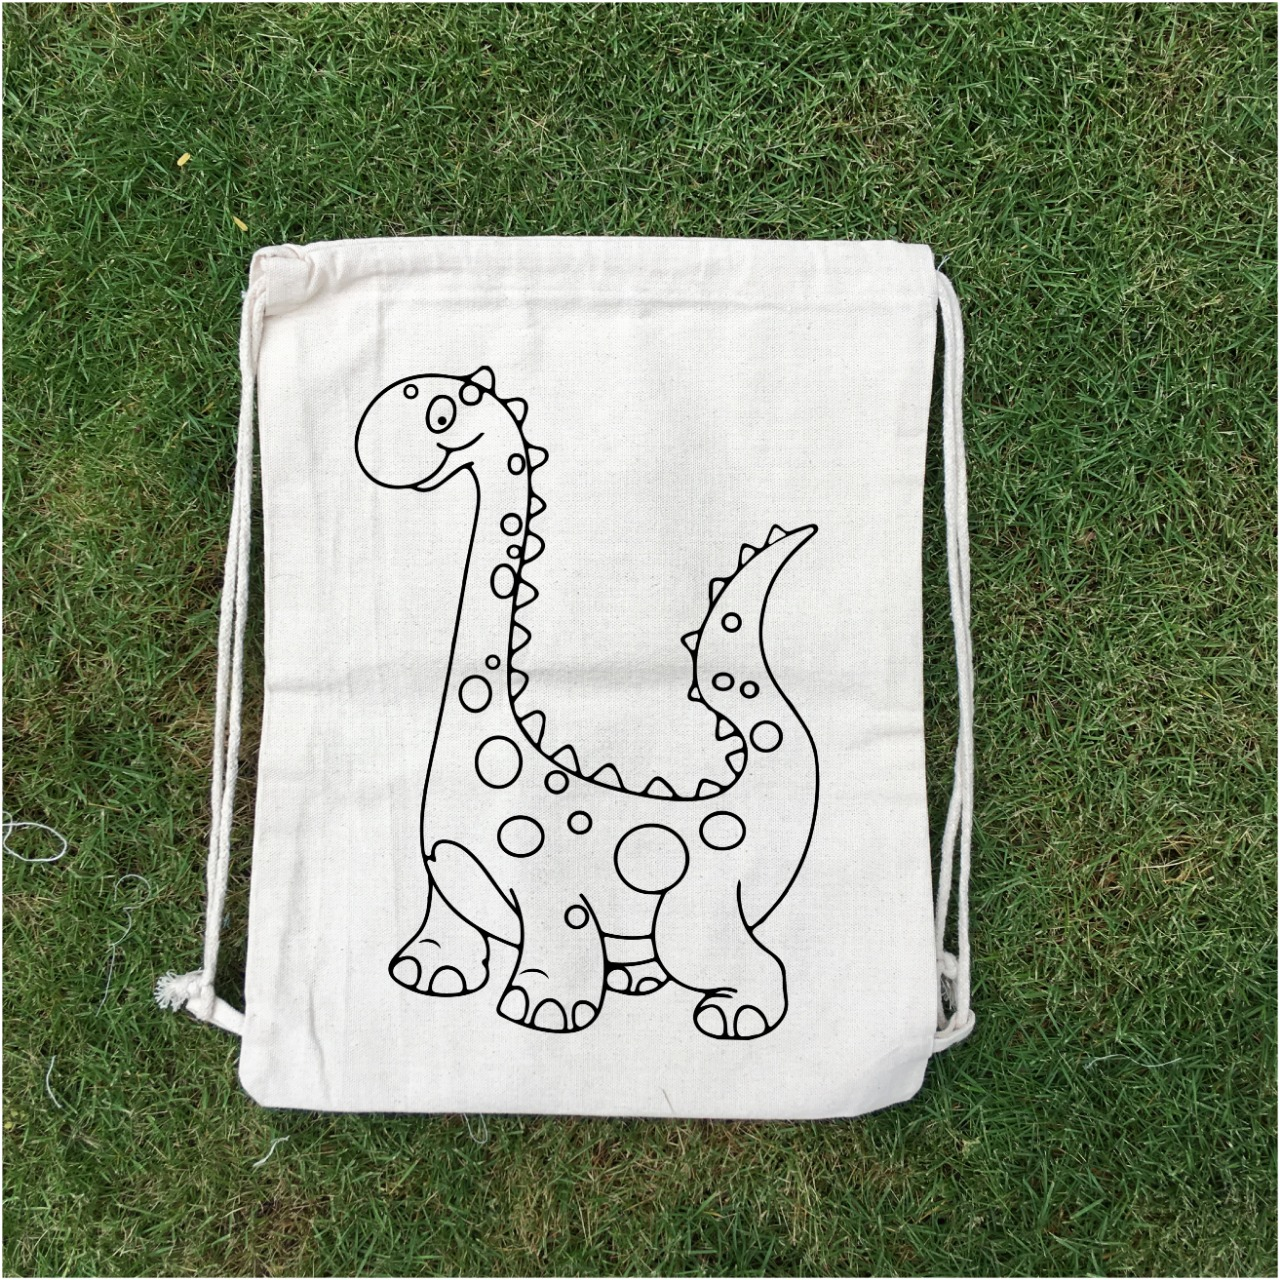 """Dinosaur"" Backpacks - Set of 12"